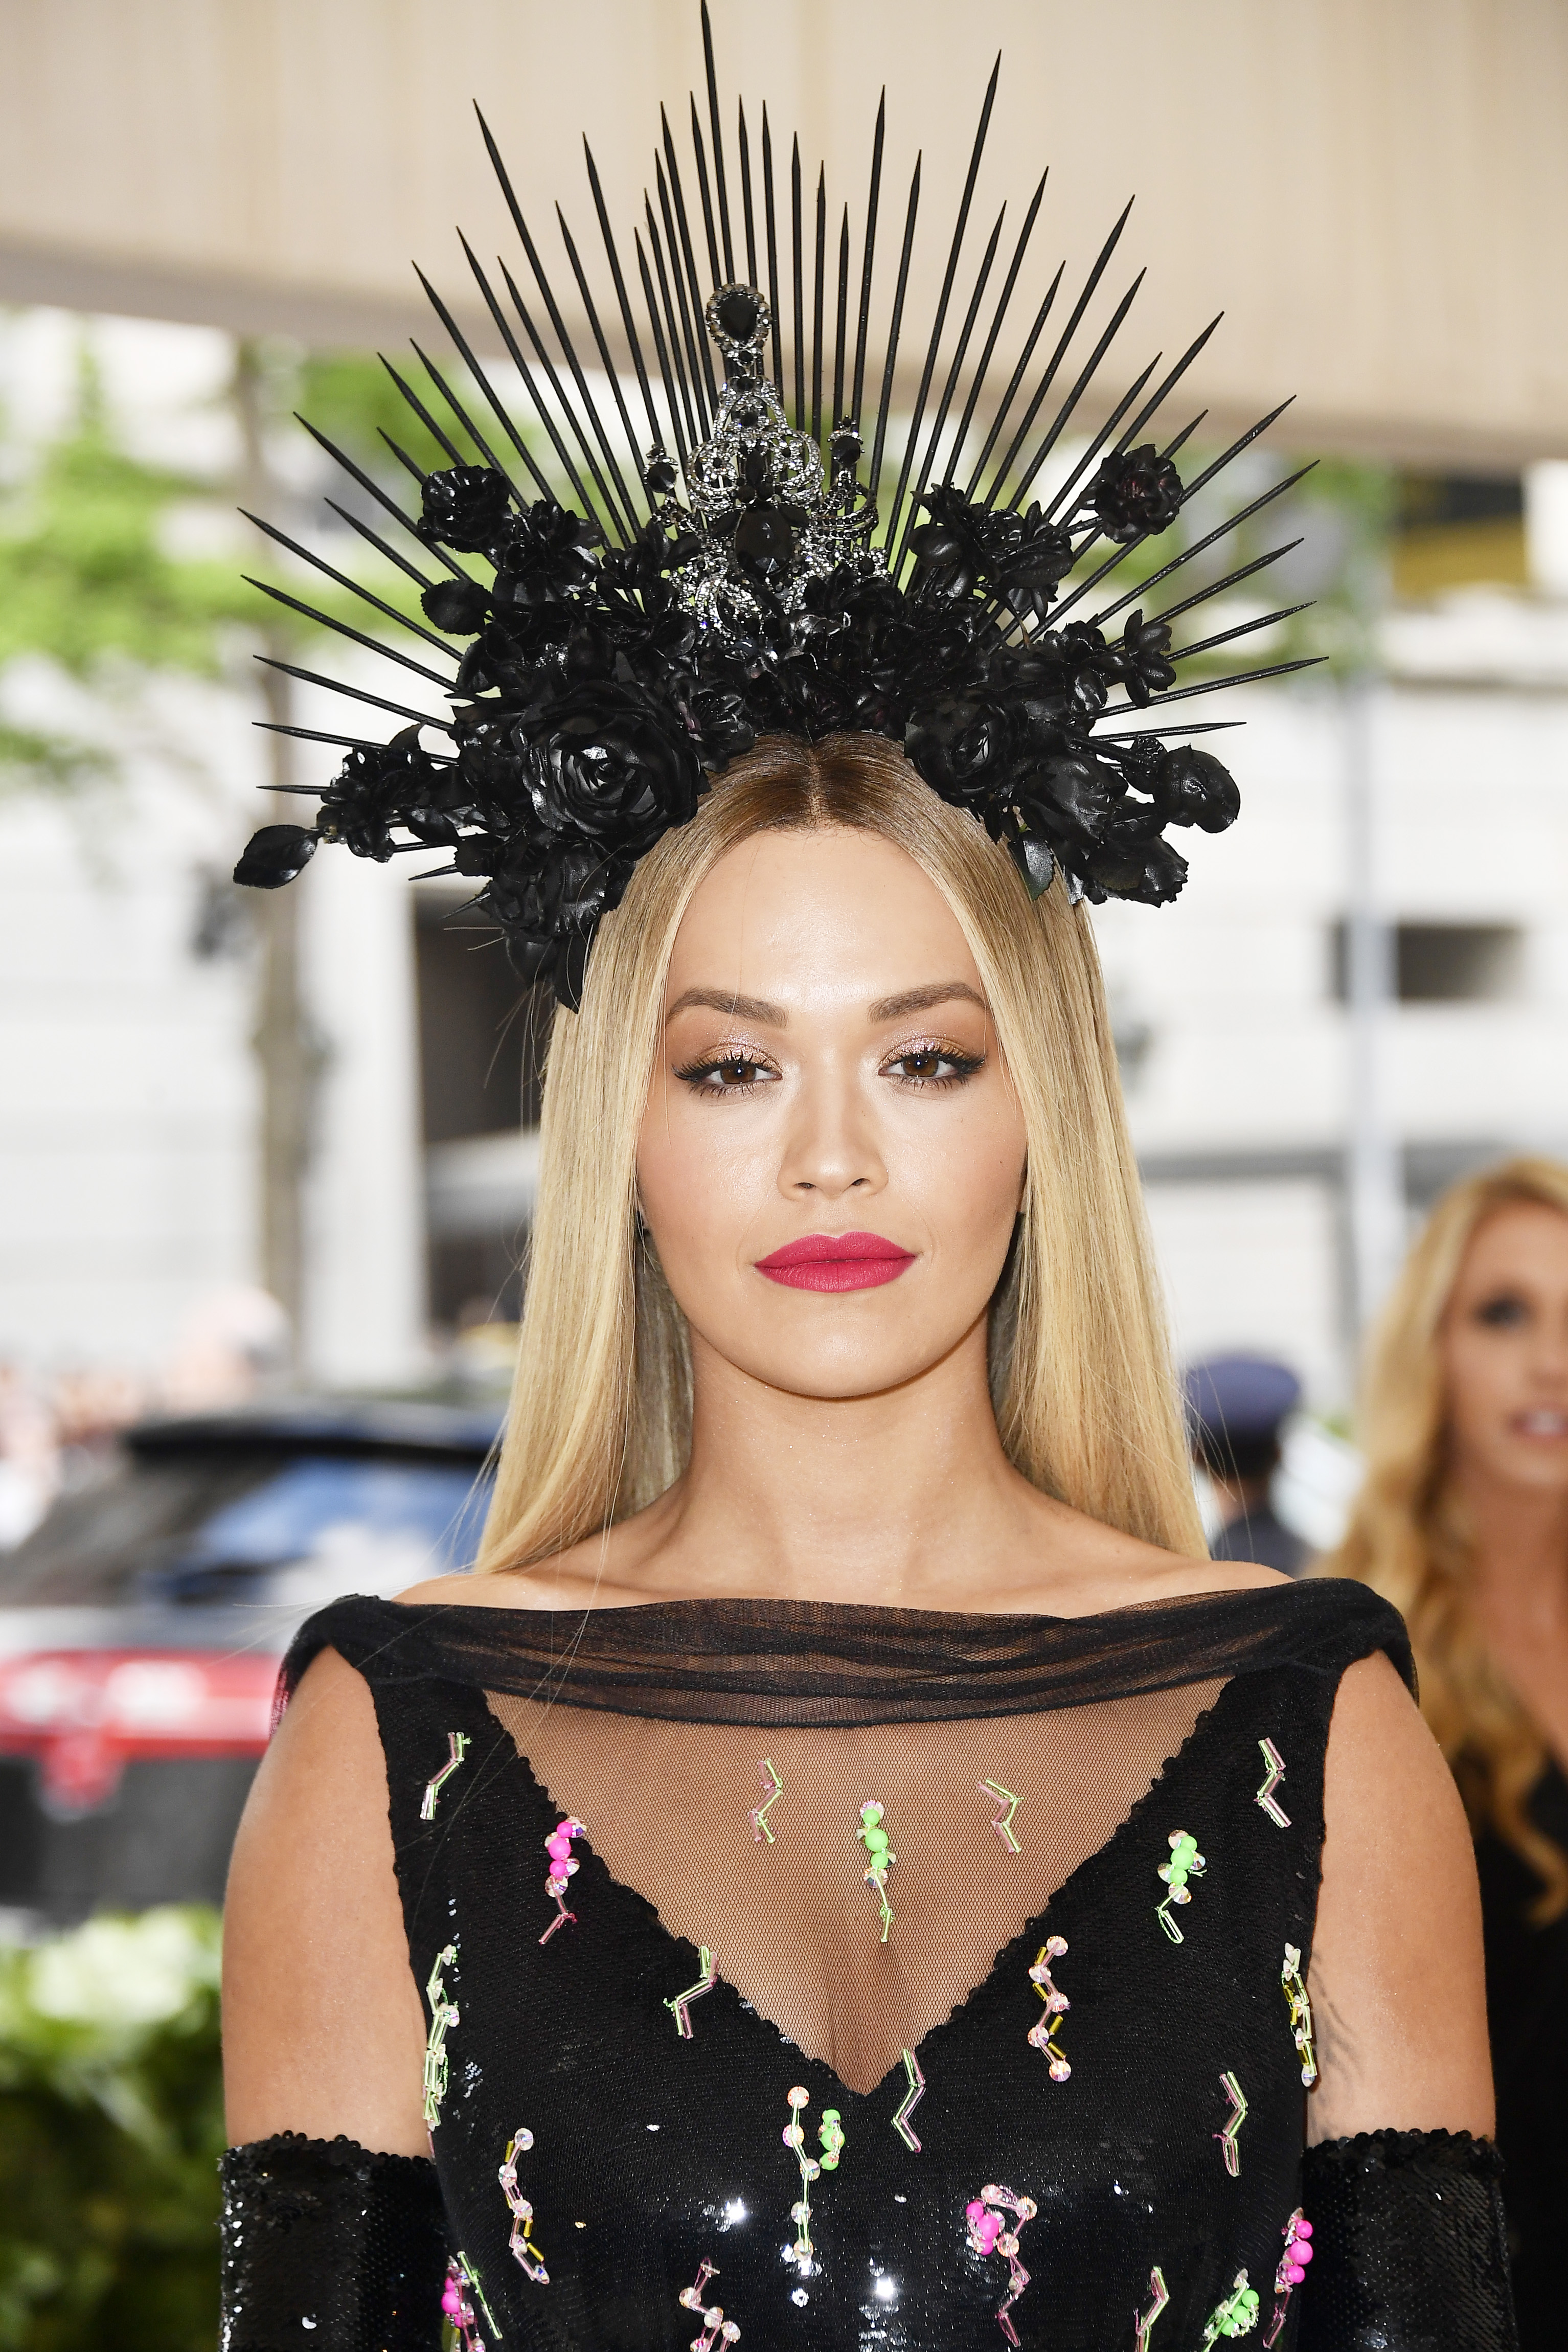 NEW YORK, NY - MAY 07: Rita Ora attends the Heavenly Bodies: Fashion & The Catholic Imagination Costume Institute Gala at The Metropolitan Museum of Art on May 7, 2018 in New York City. (Photo by Frazer Harrison/FilmMagic)